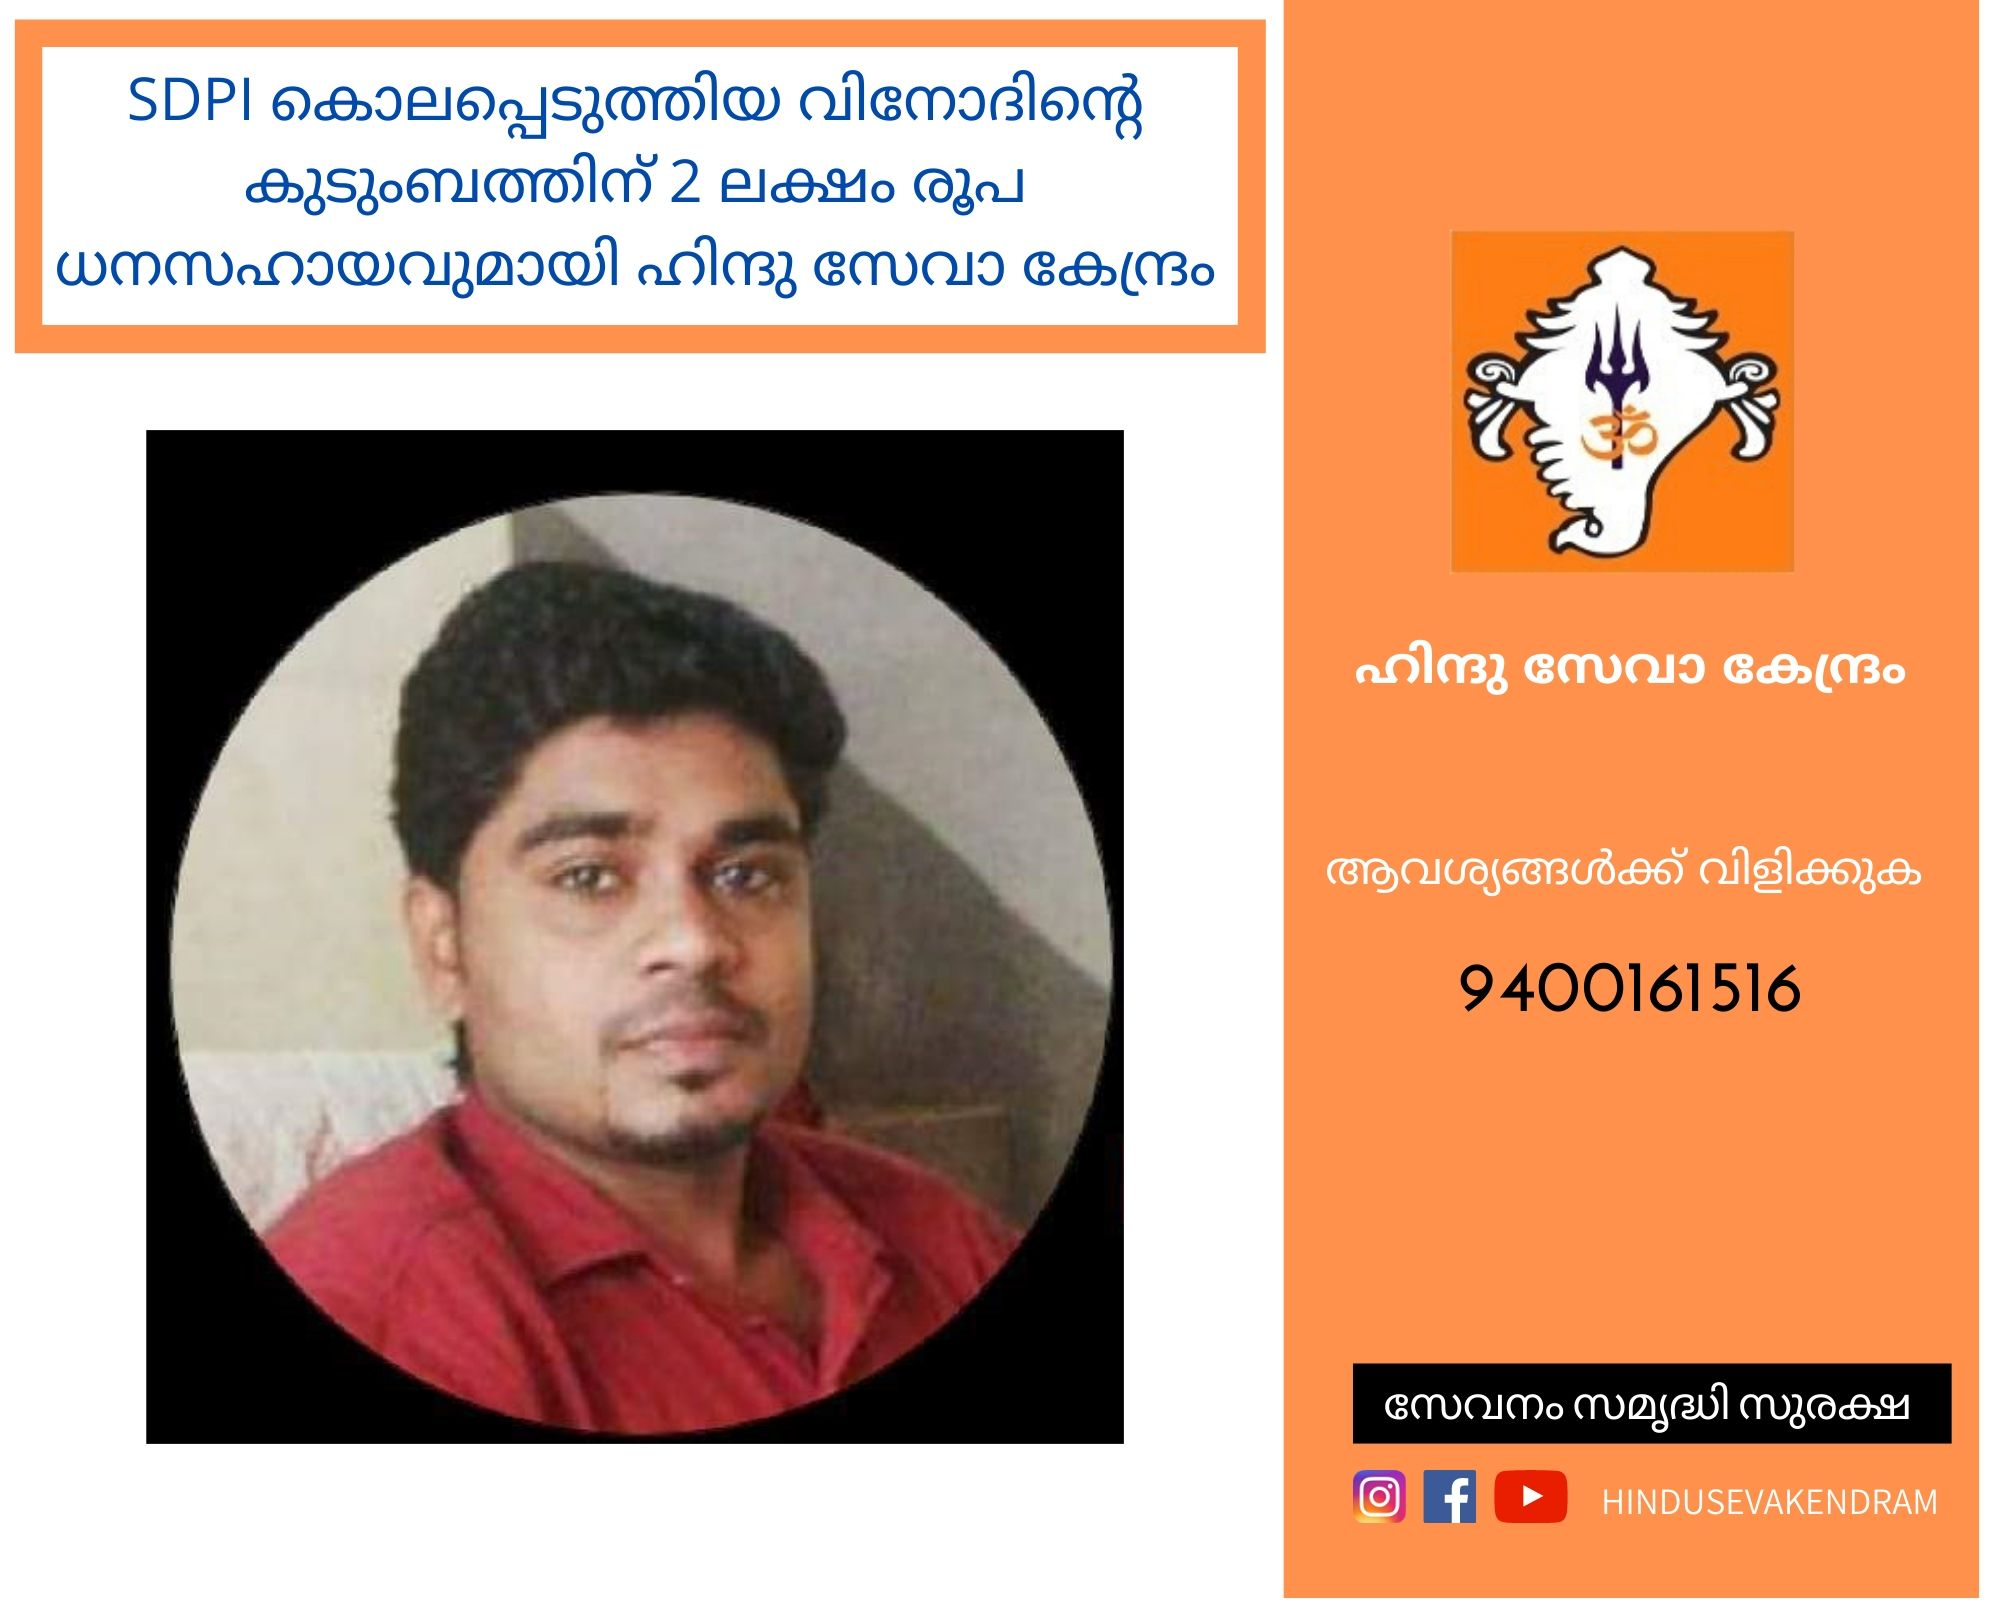 Hindu Seva Kendram extends Rs.2 Lakhs financial support to Vinod's family